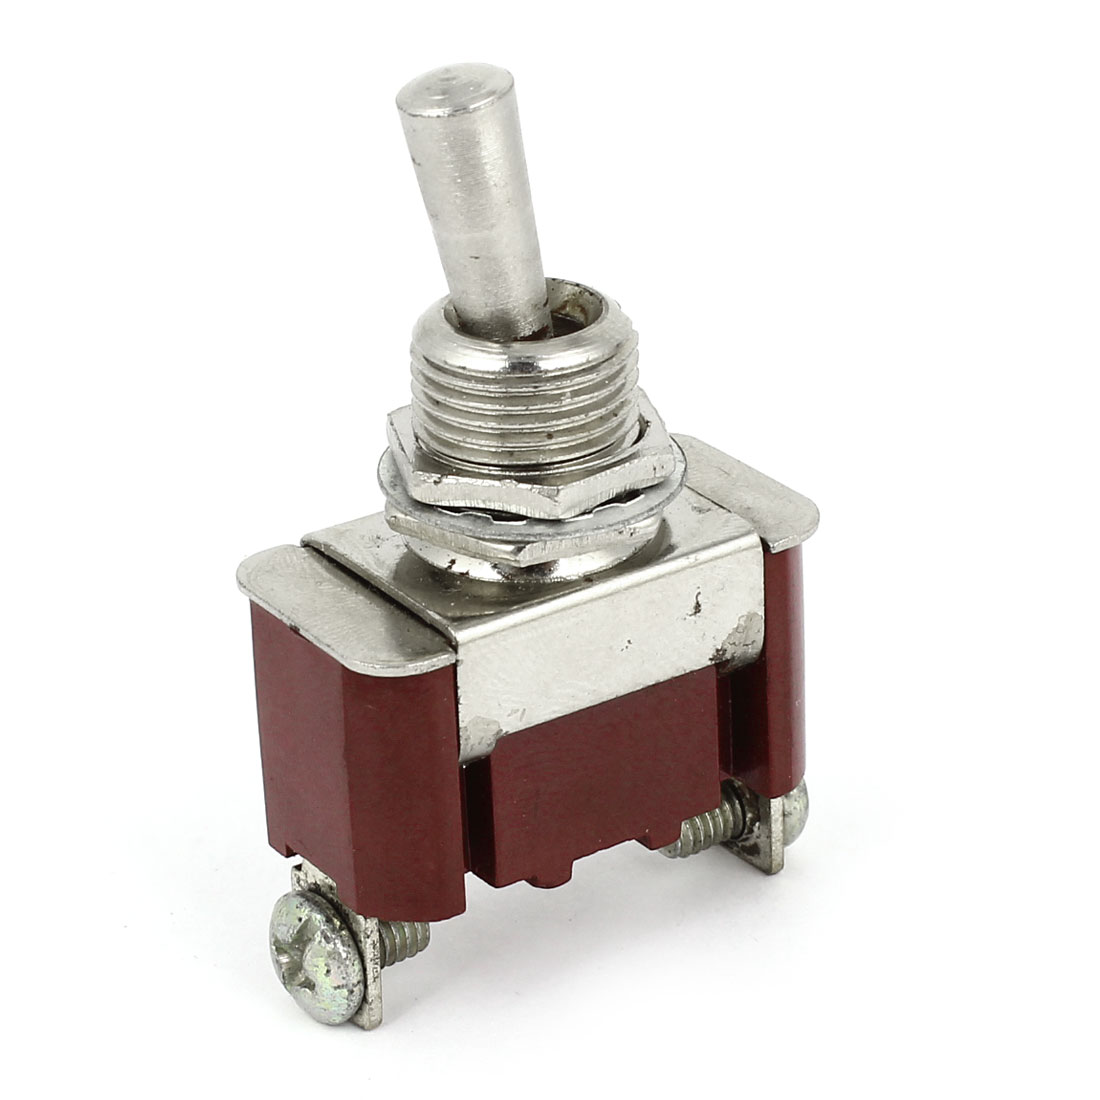 SPST 2 Position ON/OFF Angle Grinder Toggle Switch for Keyang 100